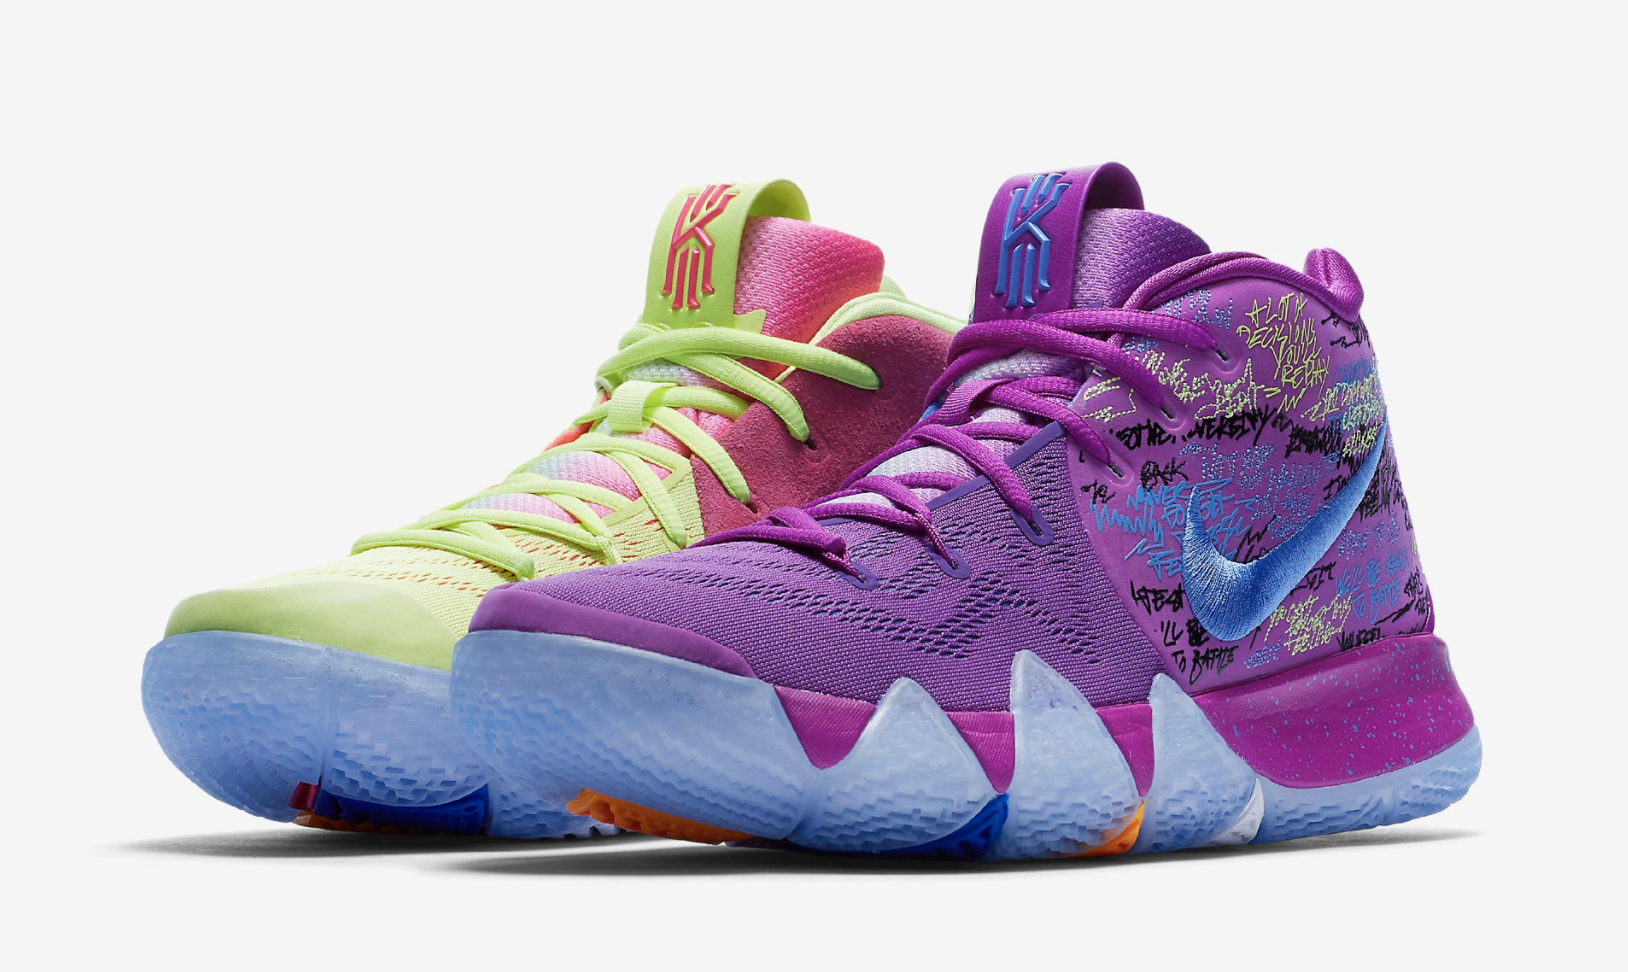 buy online c9806 53963 Nike Kyrie 4 EP Multi-color 943806-900 | Sole Collector